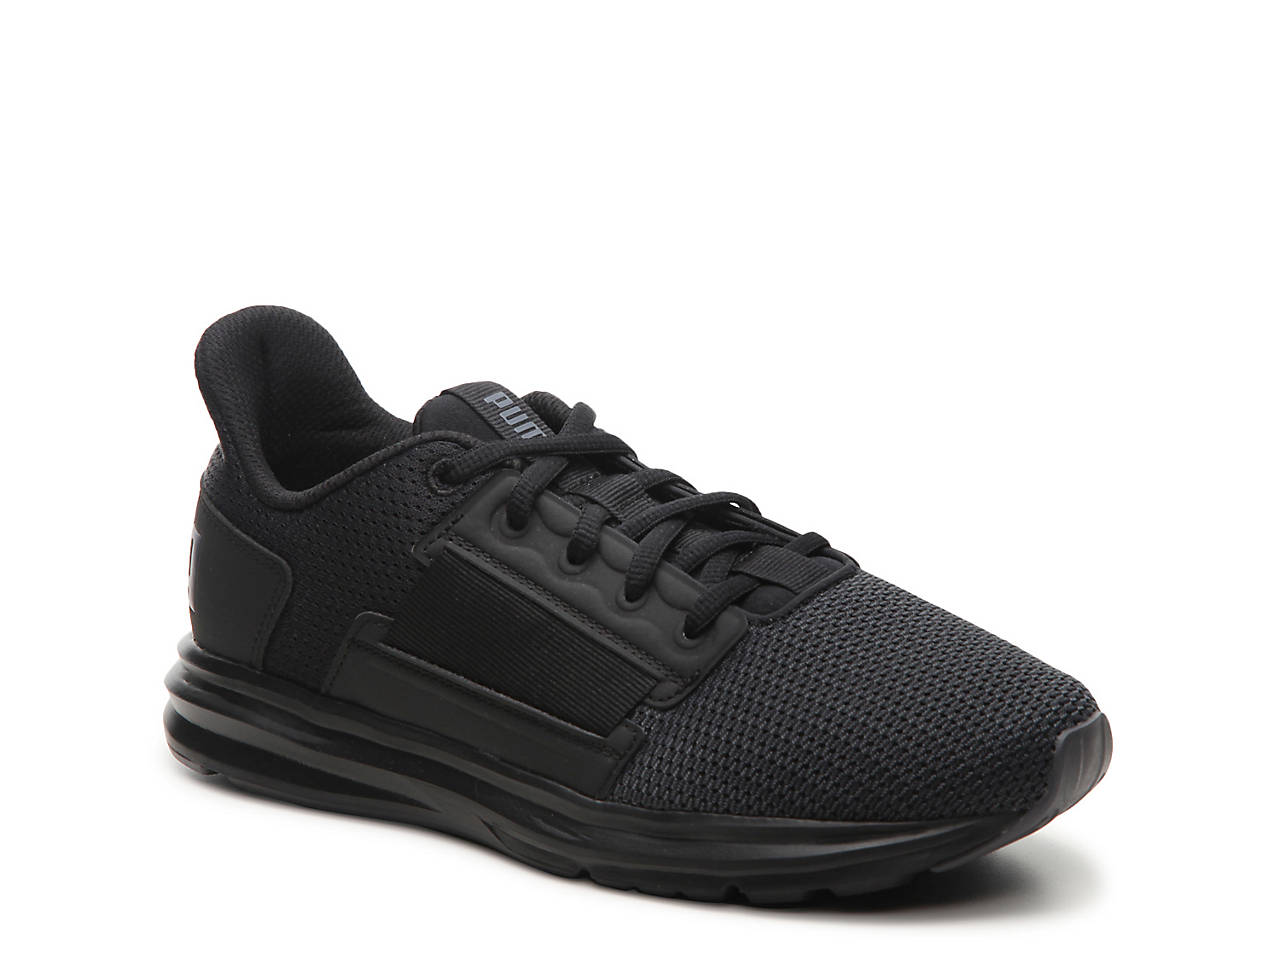 Purchase Cheap Online With Paypal PUMA Enzo Street Athletic Sneaker WrEPfYEpU